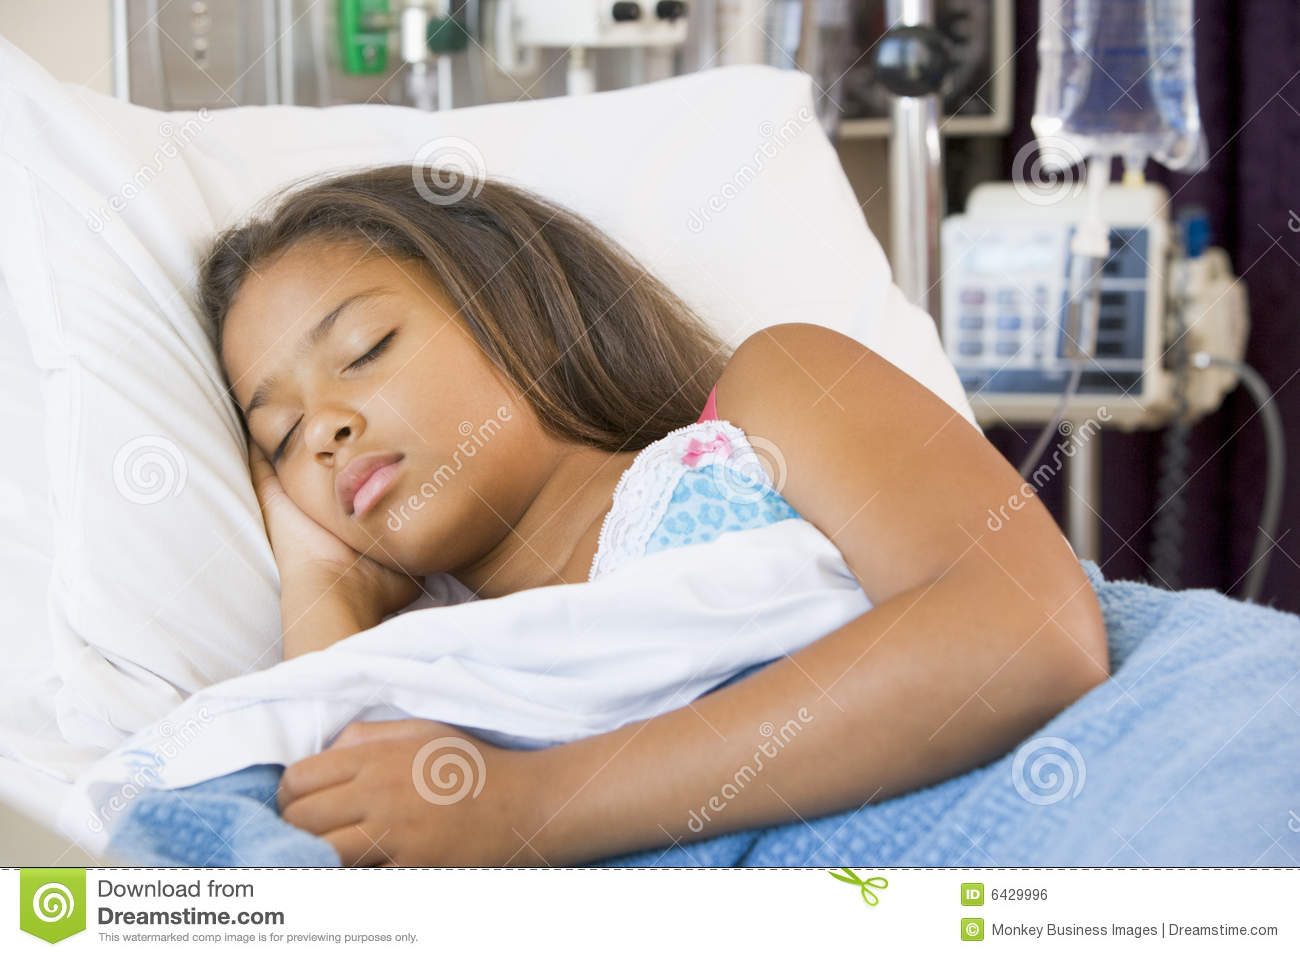 young girl nude in hospital